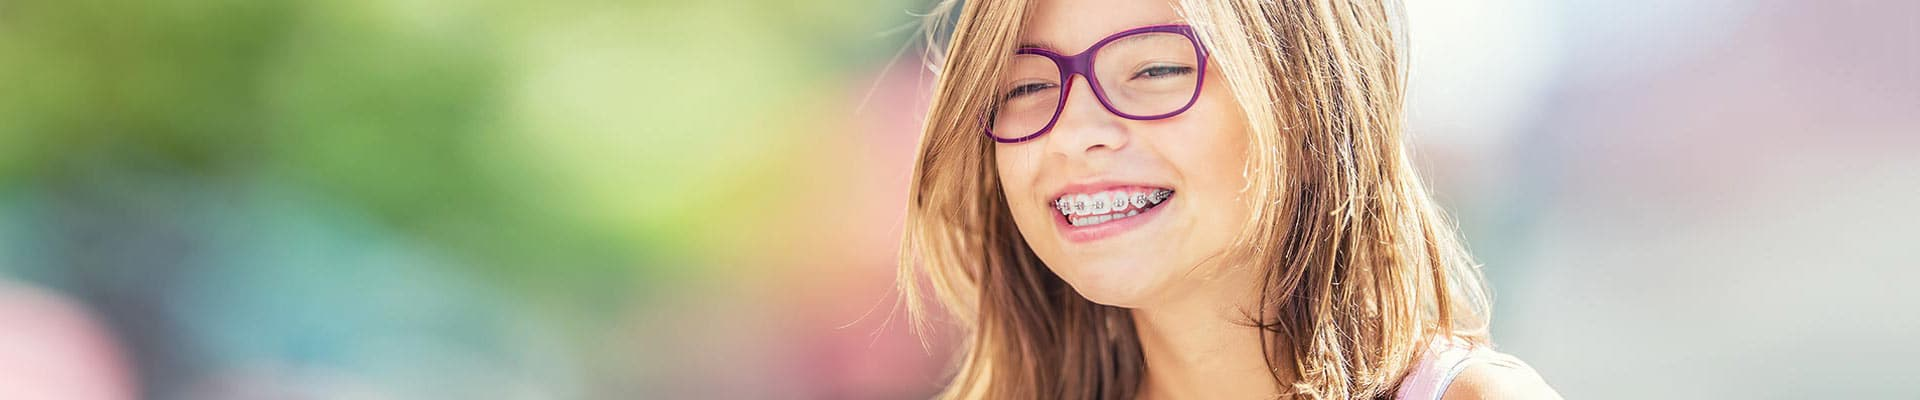 Girl with braces San Ramon Children's Dentistry and Orthodontics in San Ramon, CA